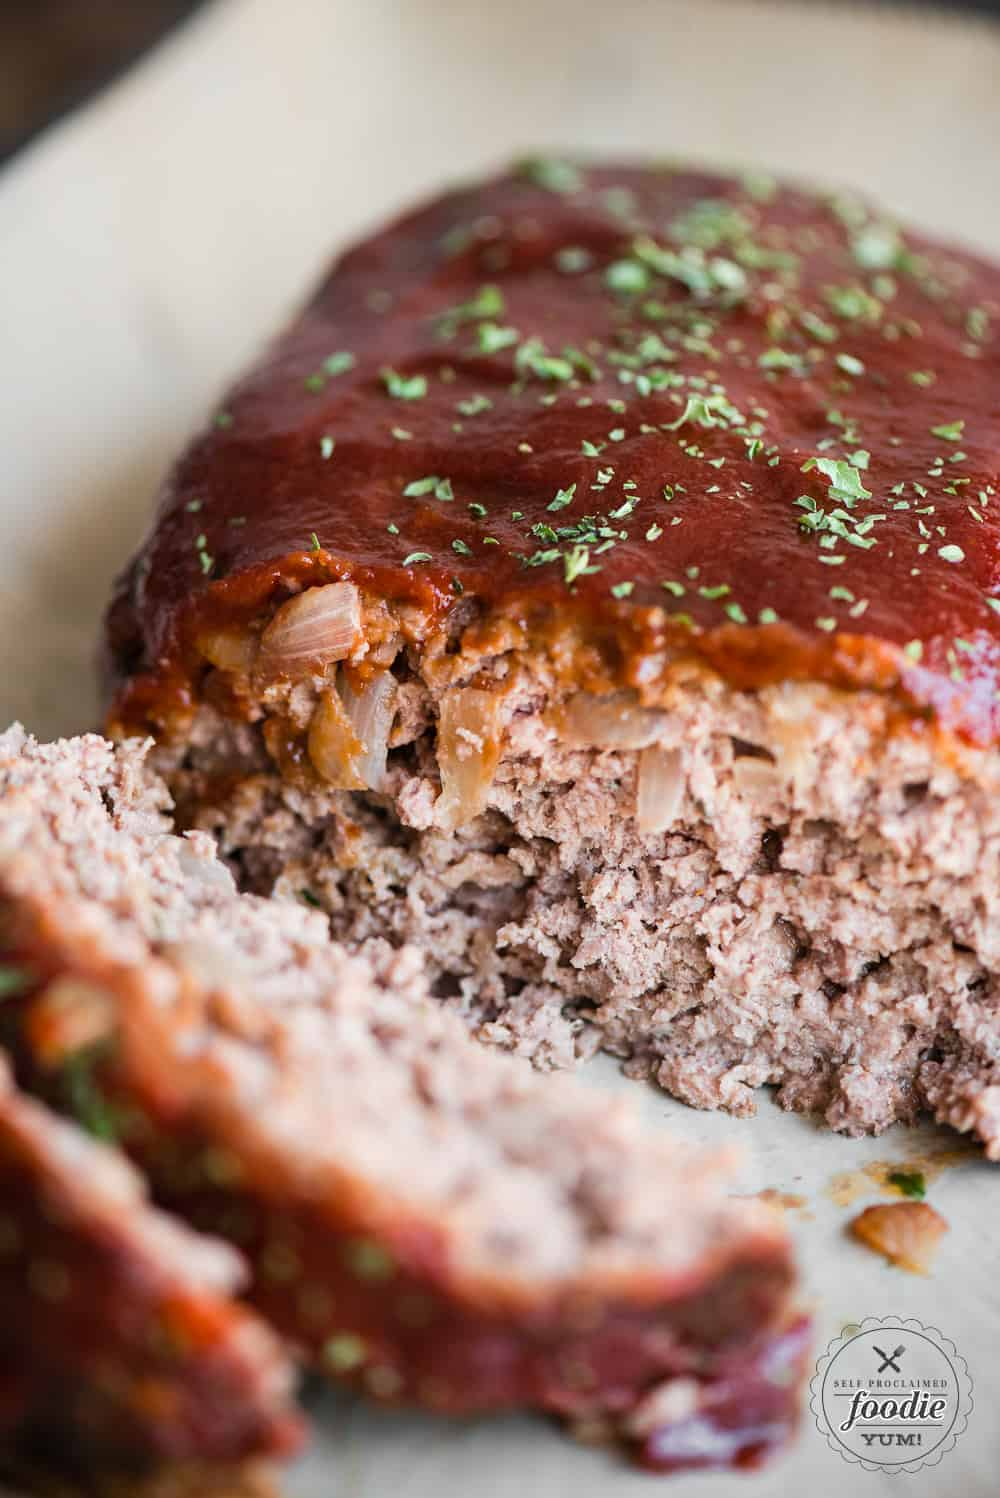 Granny S Classic Meatloaf Recipe And Video Self Proclaimed Foodie